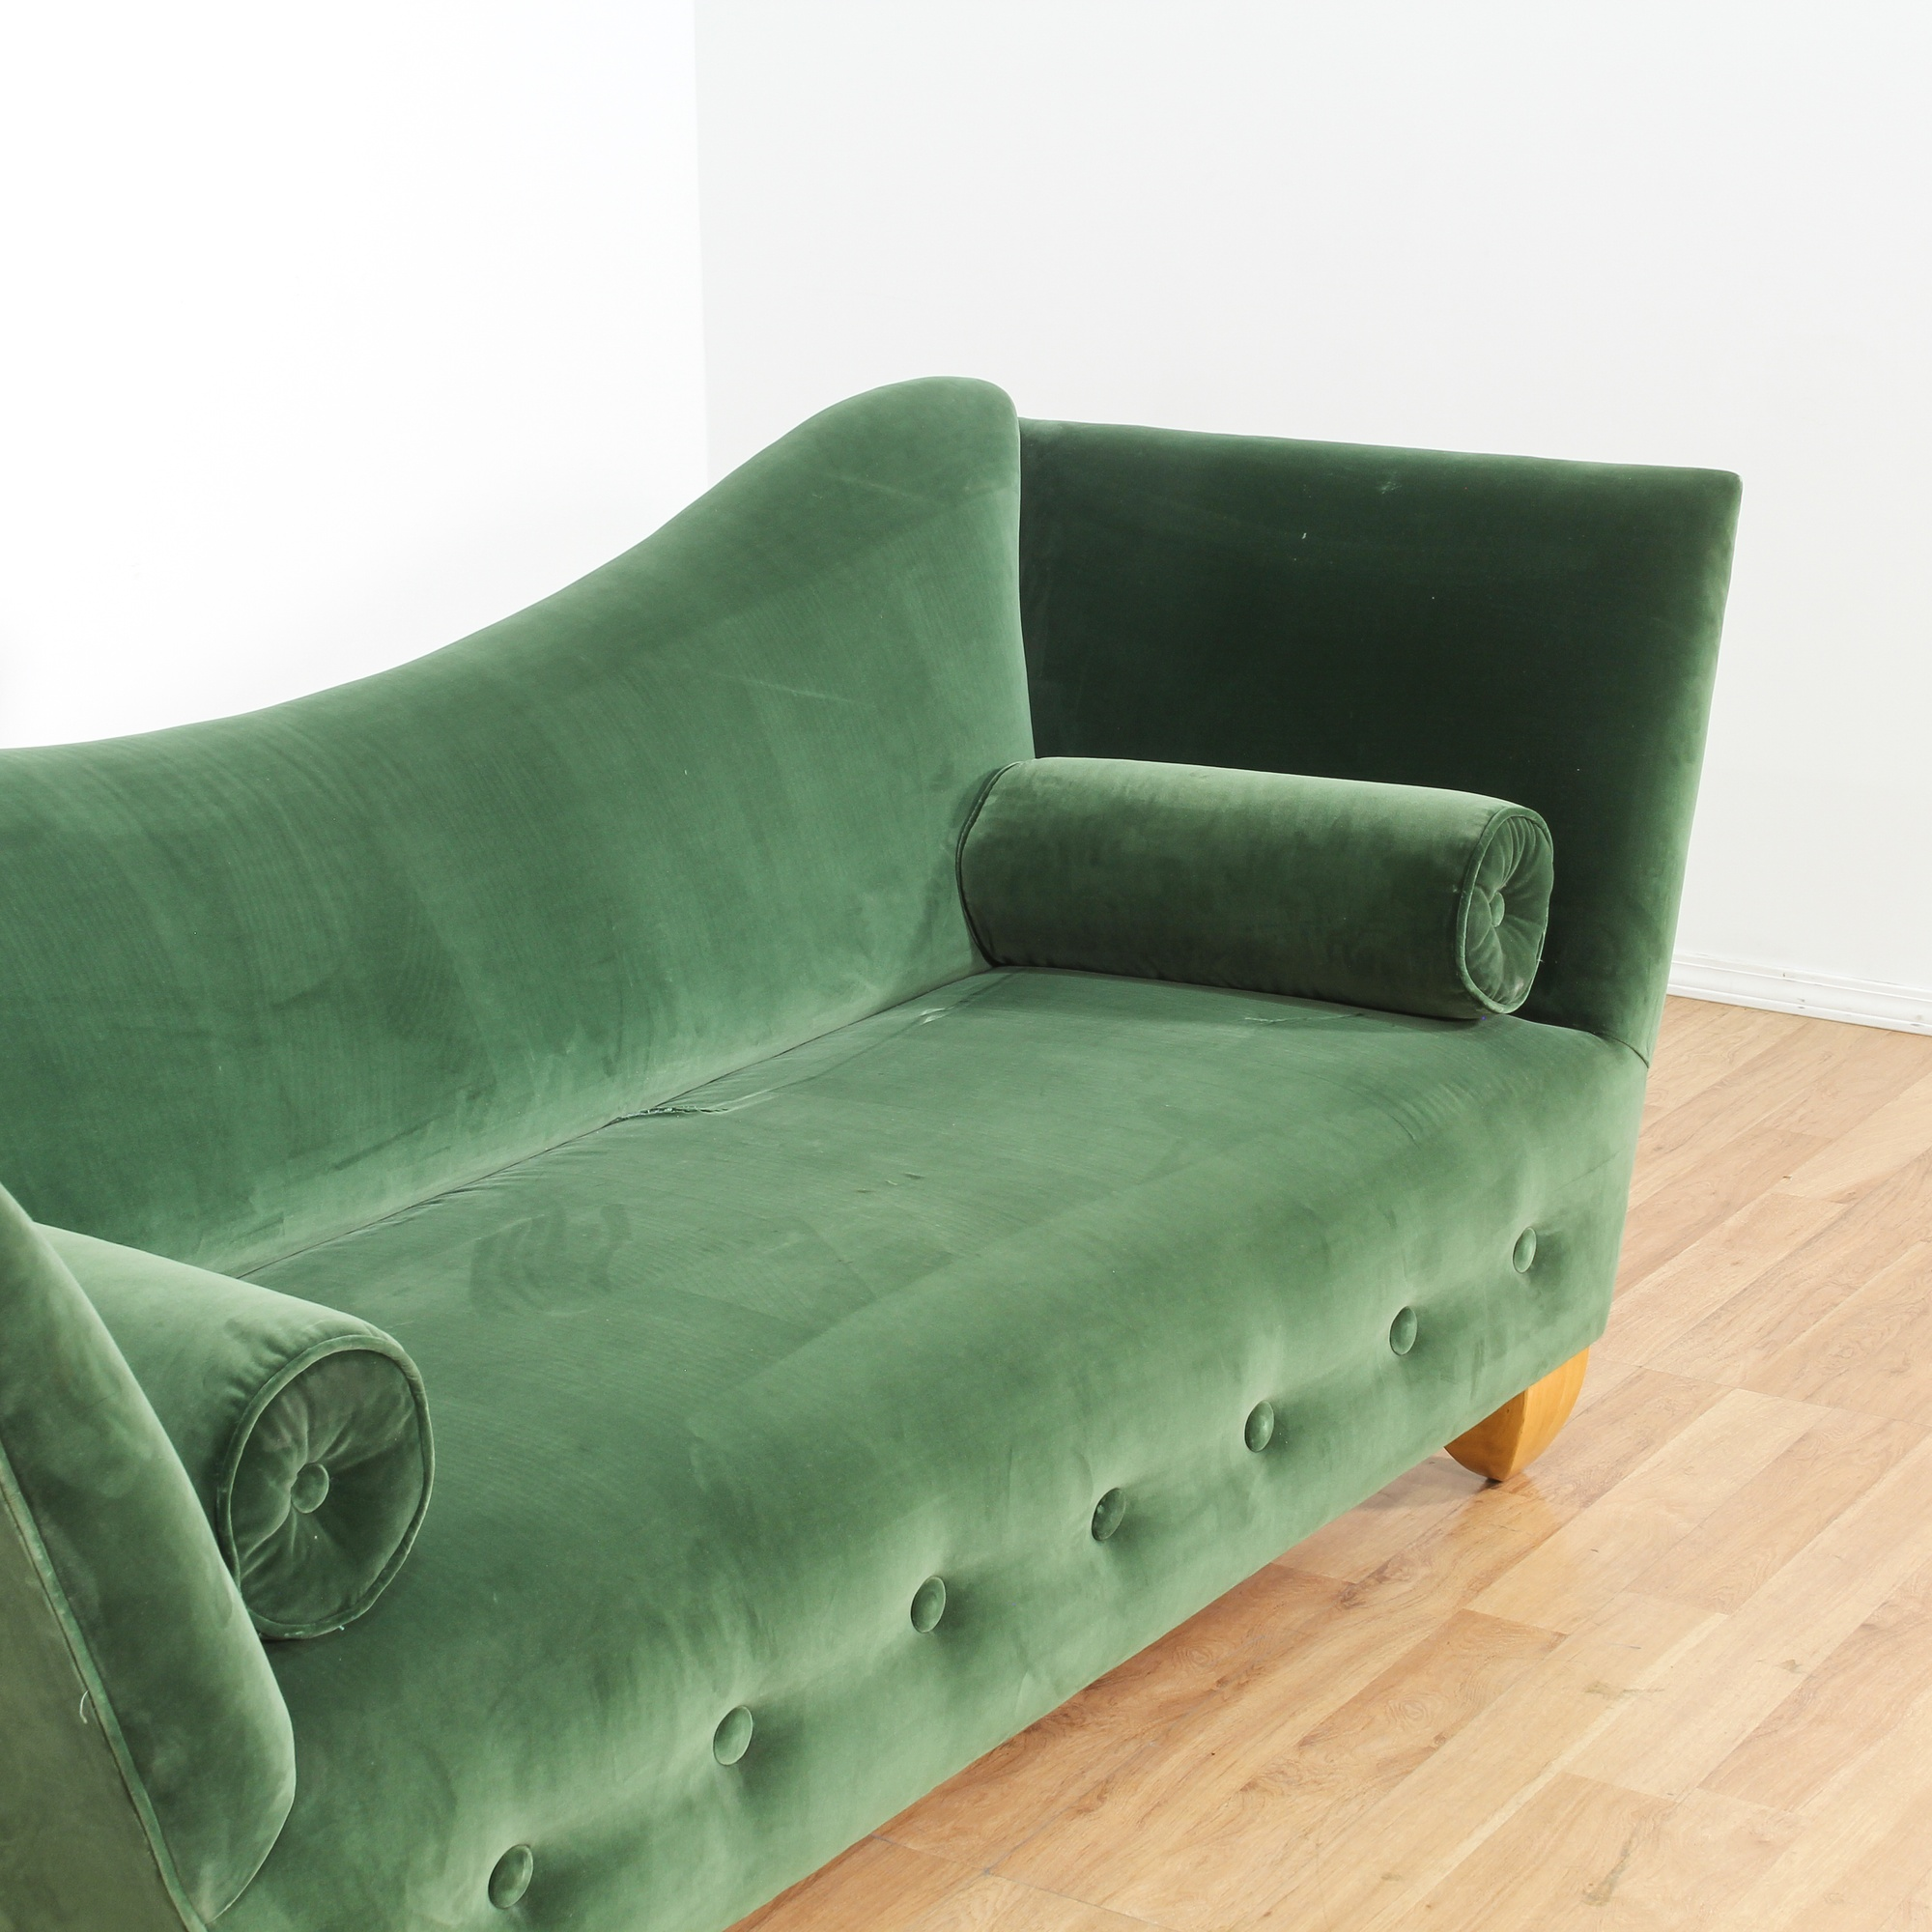 Moderne green plush upholstered sofa loveseat vintage for Plush couch and loveseat